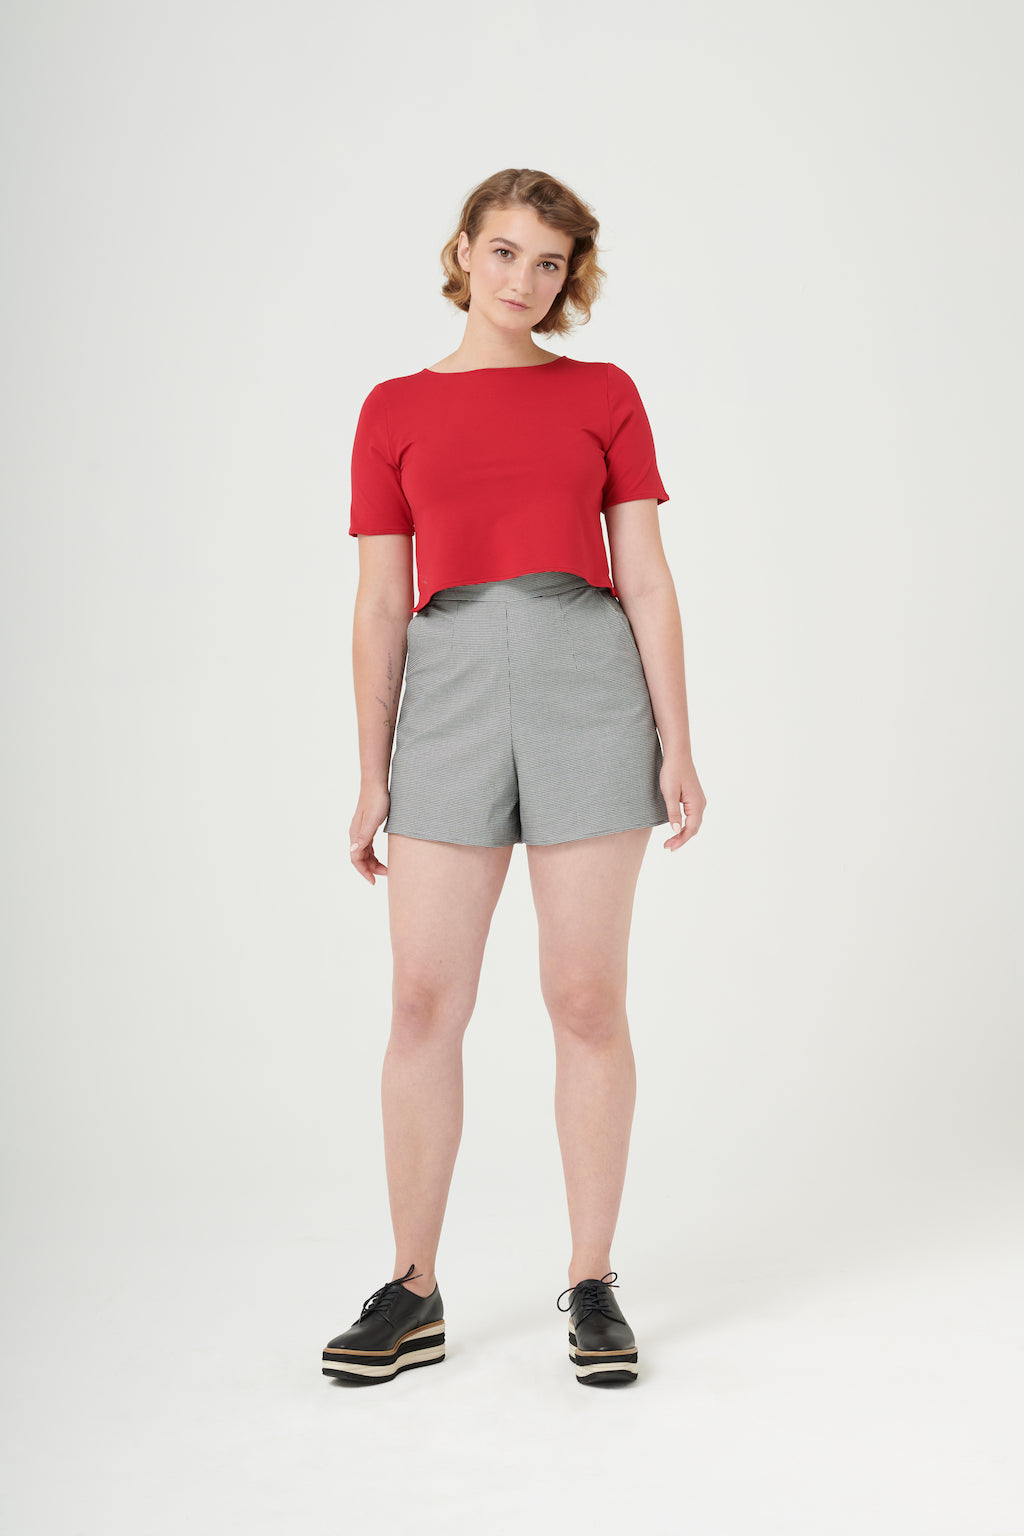 Cecilia | Boxy Crop Top | Cherry Red